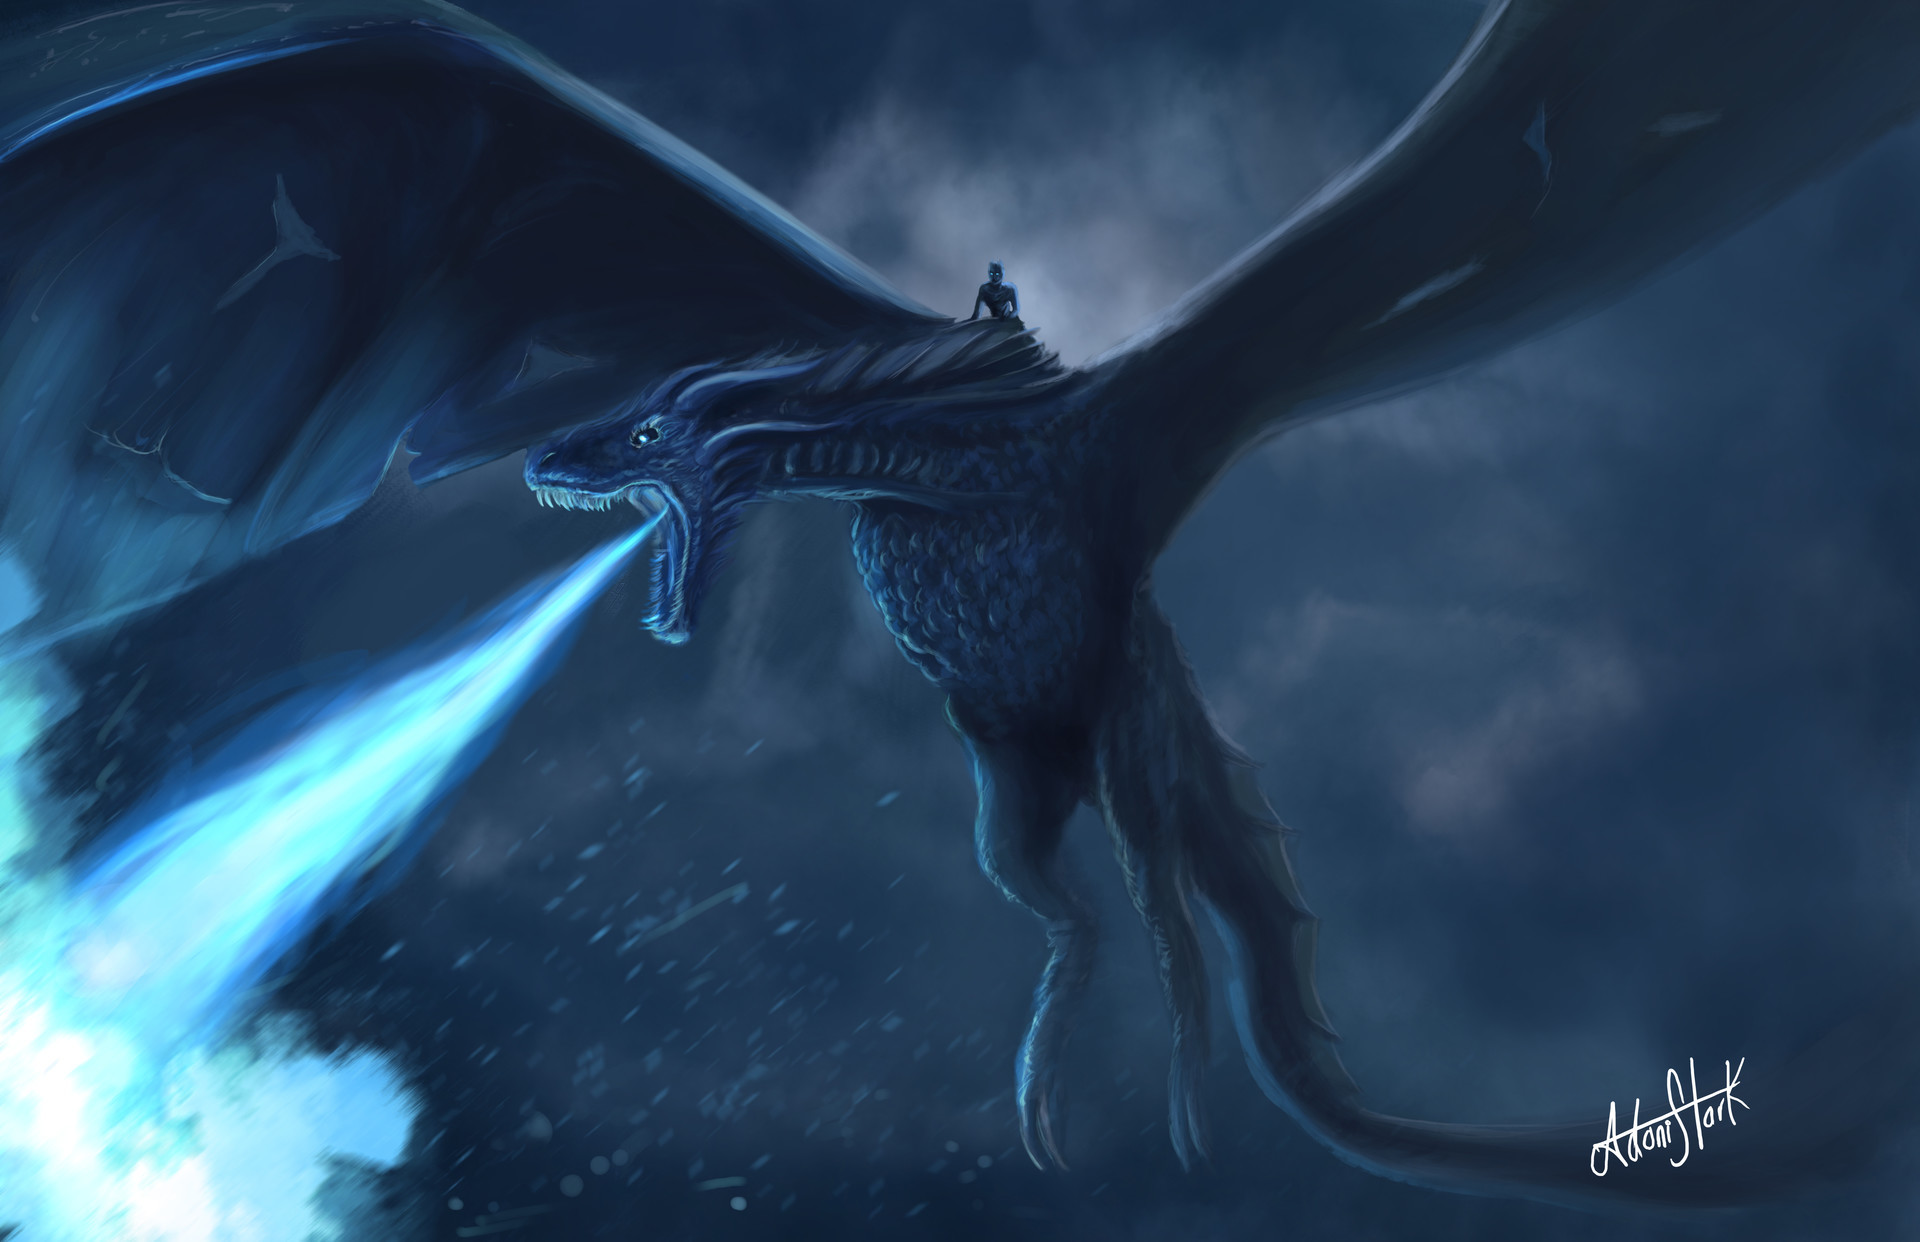 Top Wallpaper Night Dragon - 1014856-most-popular-the-night-king-wallpapers-1920x1242  Pictures.jpg